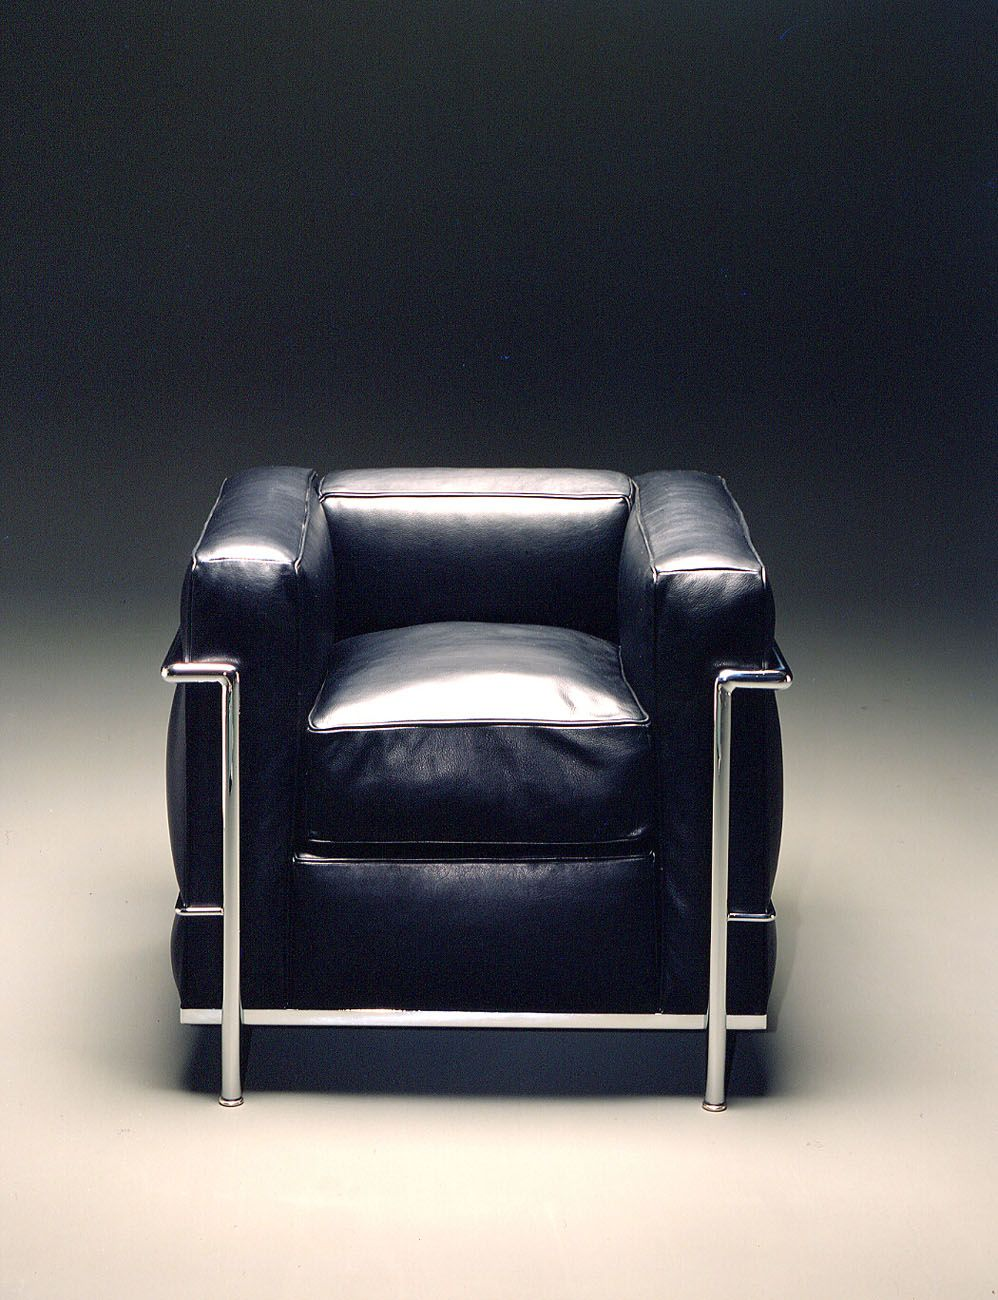 le corbusier pierre jeanneret charlotte perriand the lc2 chair 1928 originally. Black Bedroom Furniture Sets. Home Design Ideas